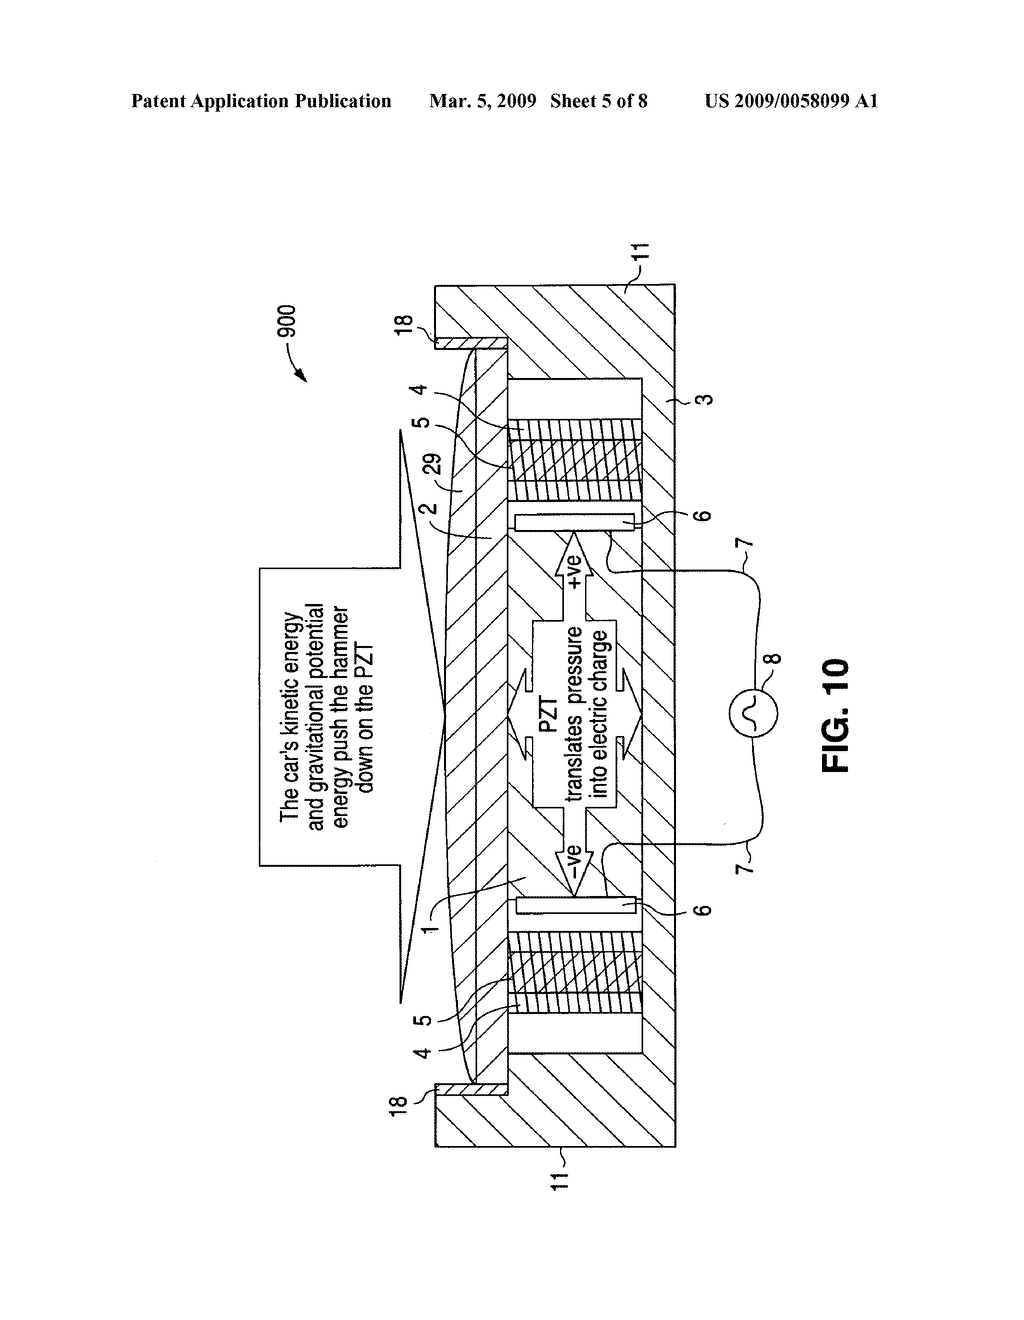 Electro Gravity Plates For Generating Electricity From Passage Of Diagram Vehicles Over The Schematic And Image 06